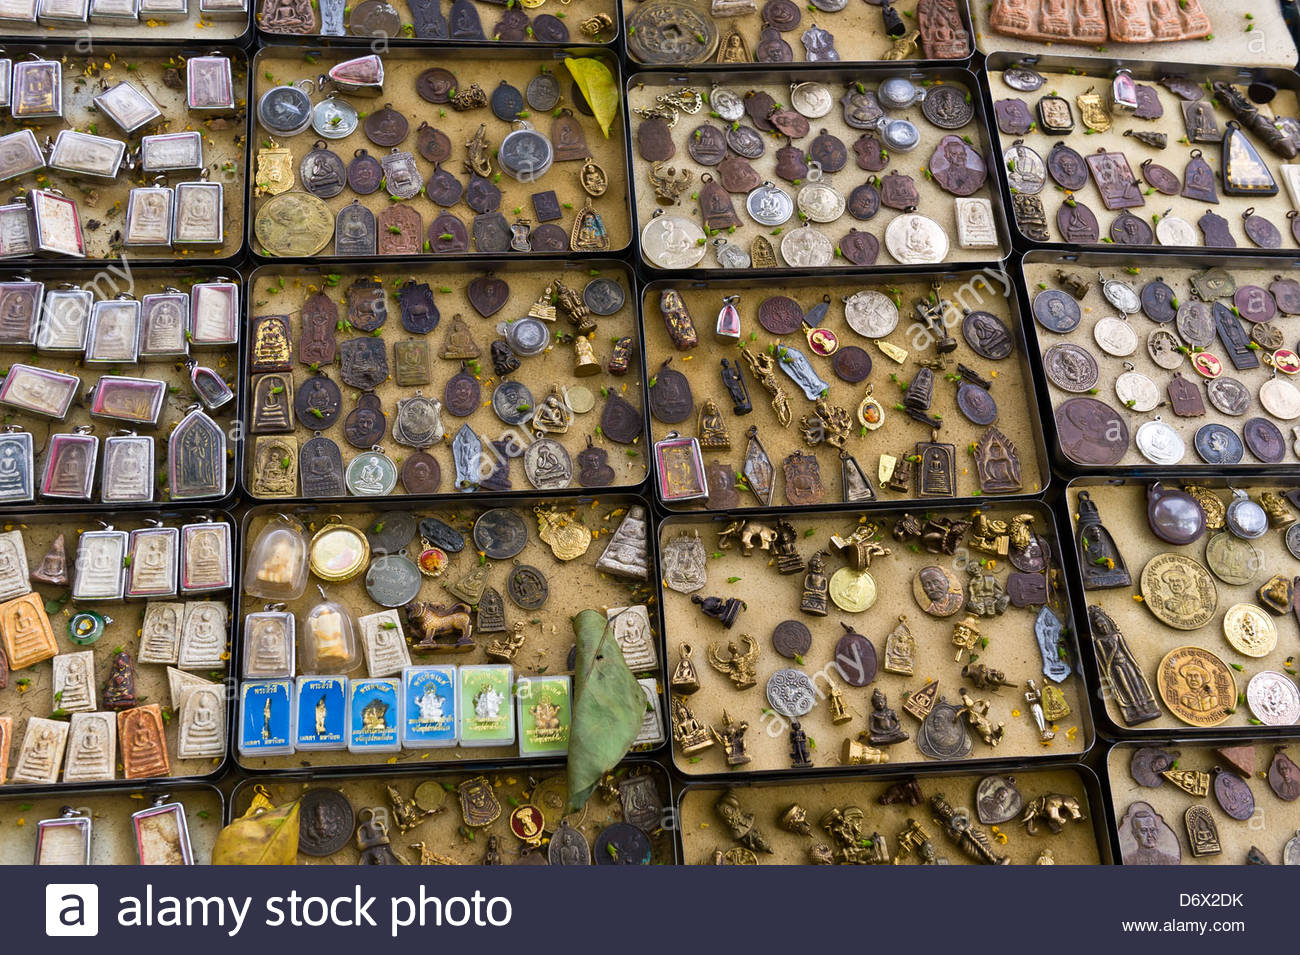 Amulets, the Amulet Market, Bangkok, Thailand Stock Photo, Royalty Free Image...